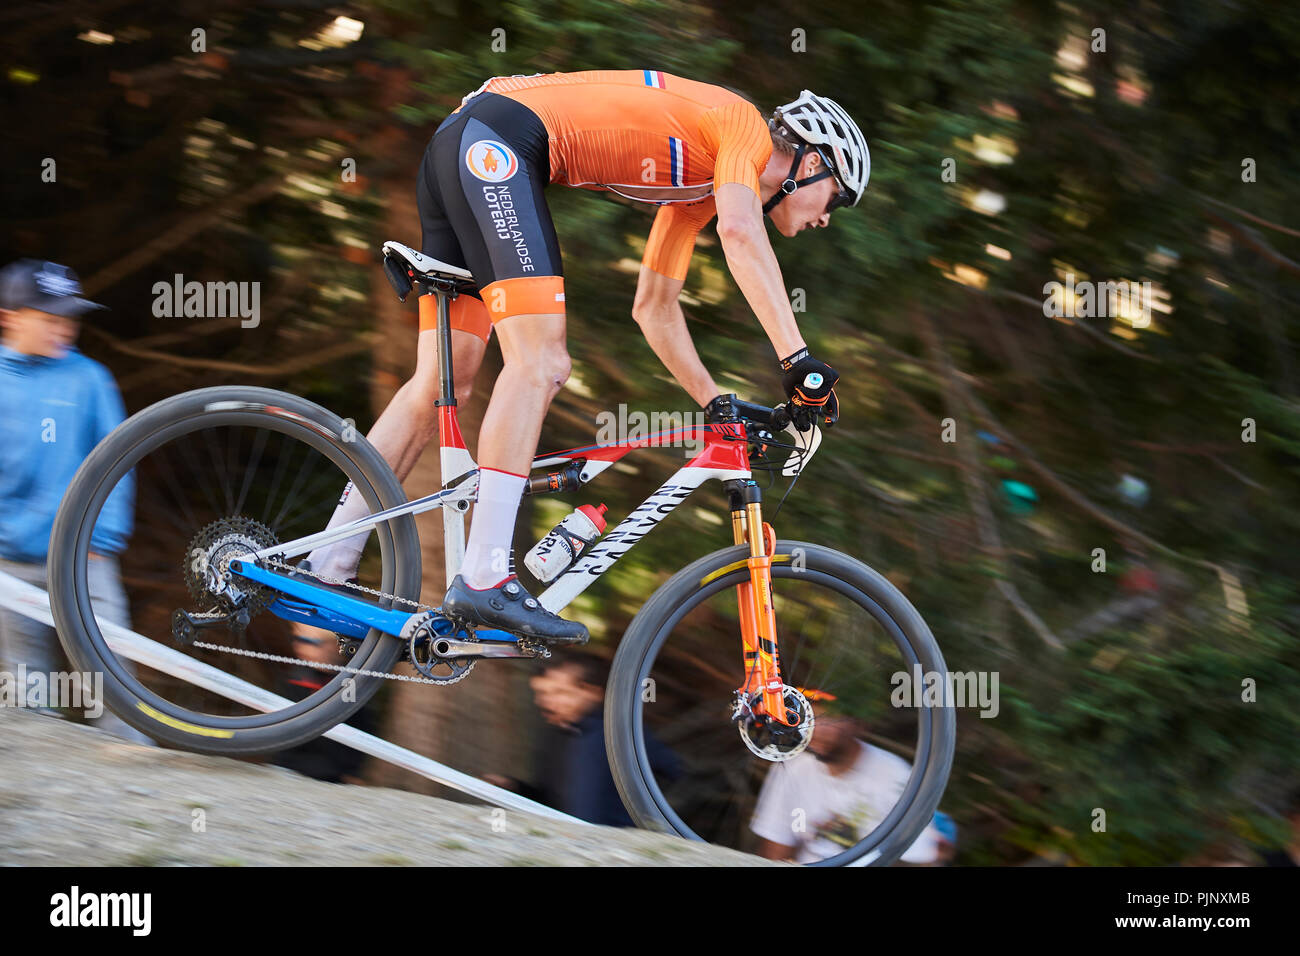 https www alamy com lenzerheide switzerland 8th september 2018 mathieu van der poel during the uci 2018 mountain bike world championships men elite cross country olympic xco in lenzerheide credit rolf simeonalamy live news image218070171 html